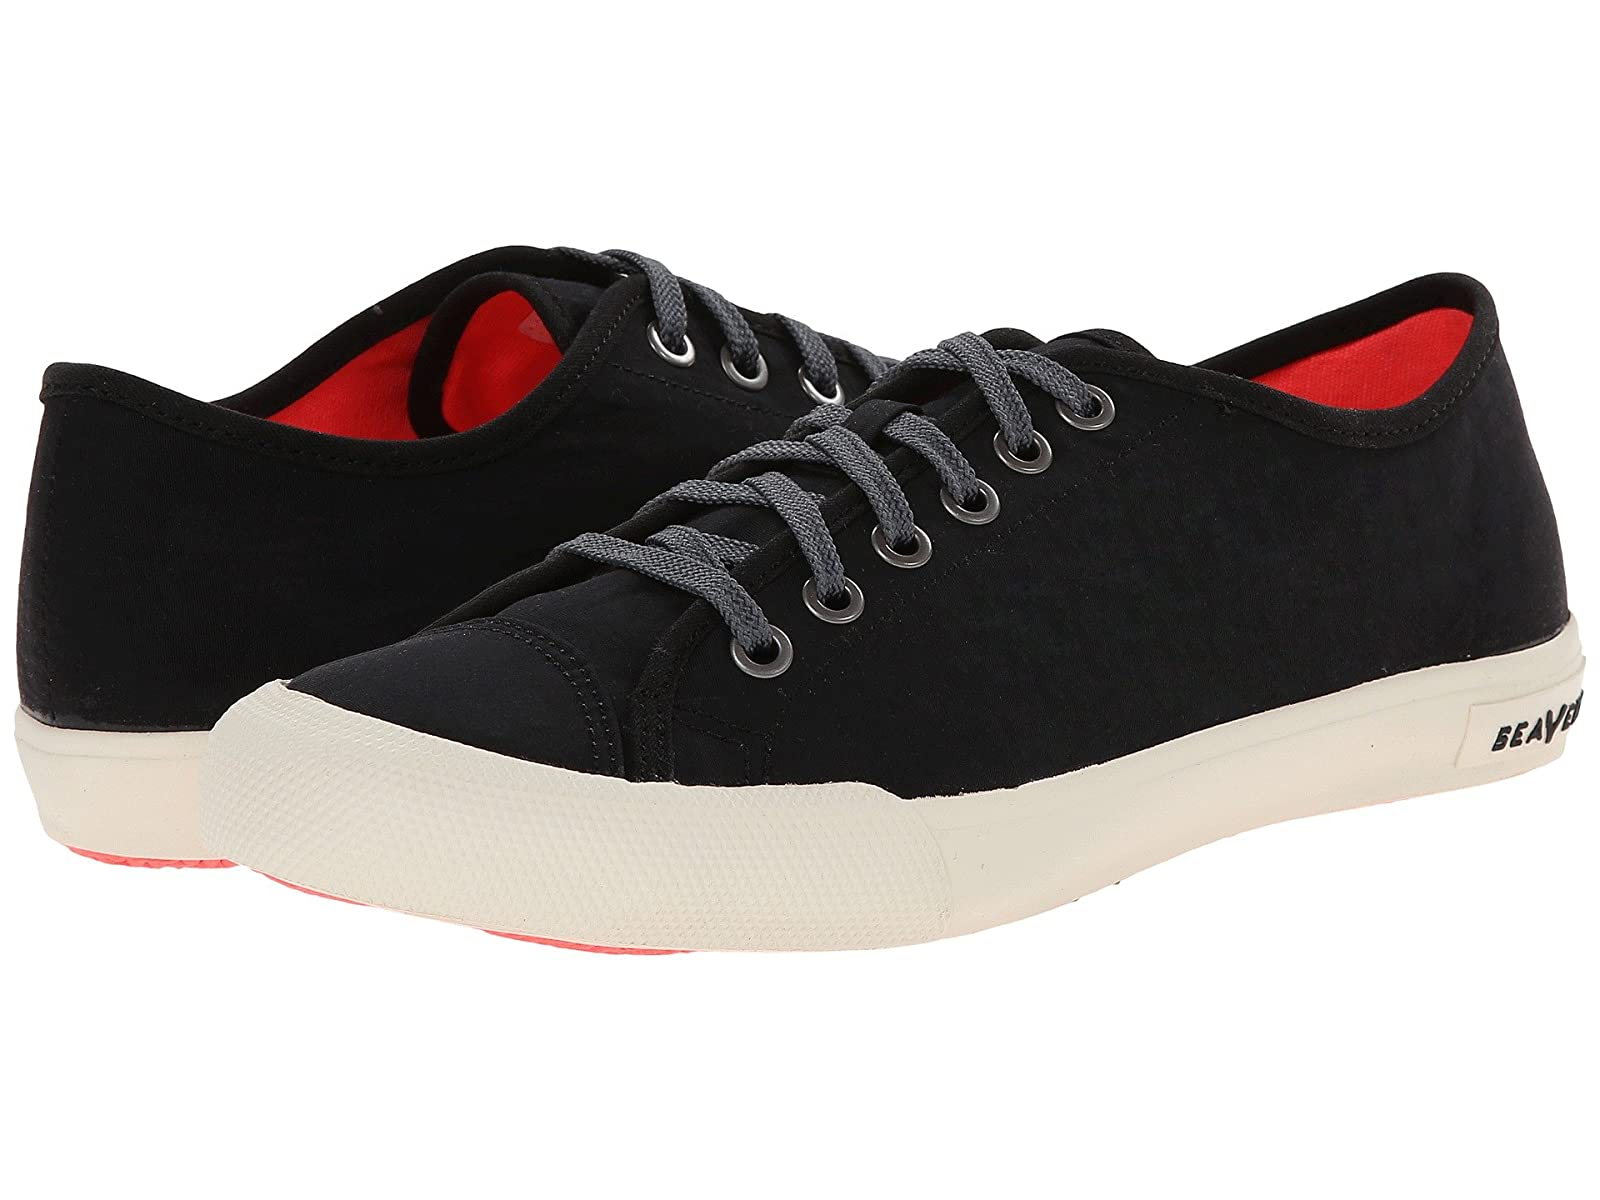 SeaVees 08/61 Army Issue Low NylonAtmospheric grades have affordable shoes